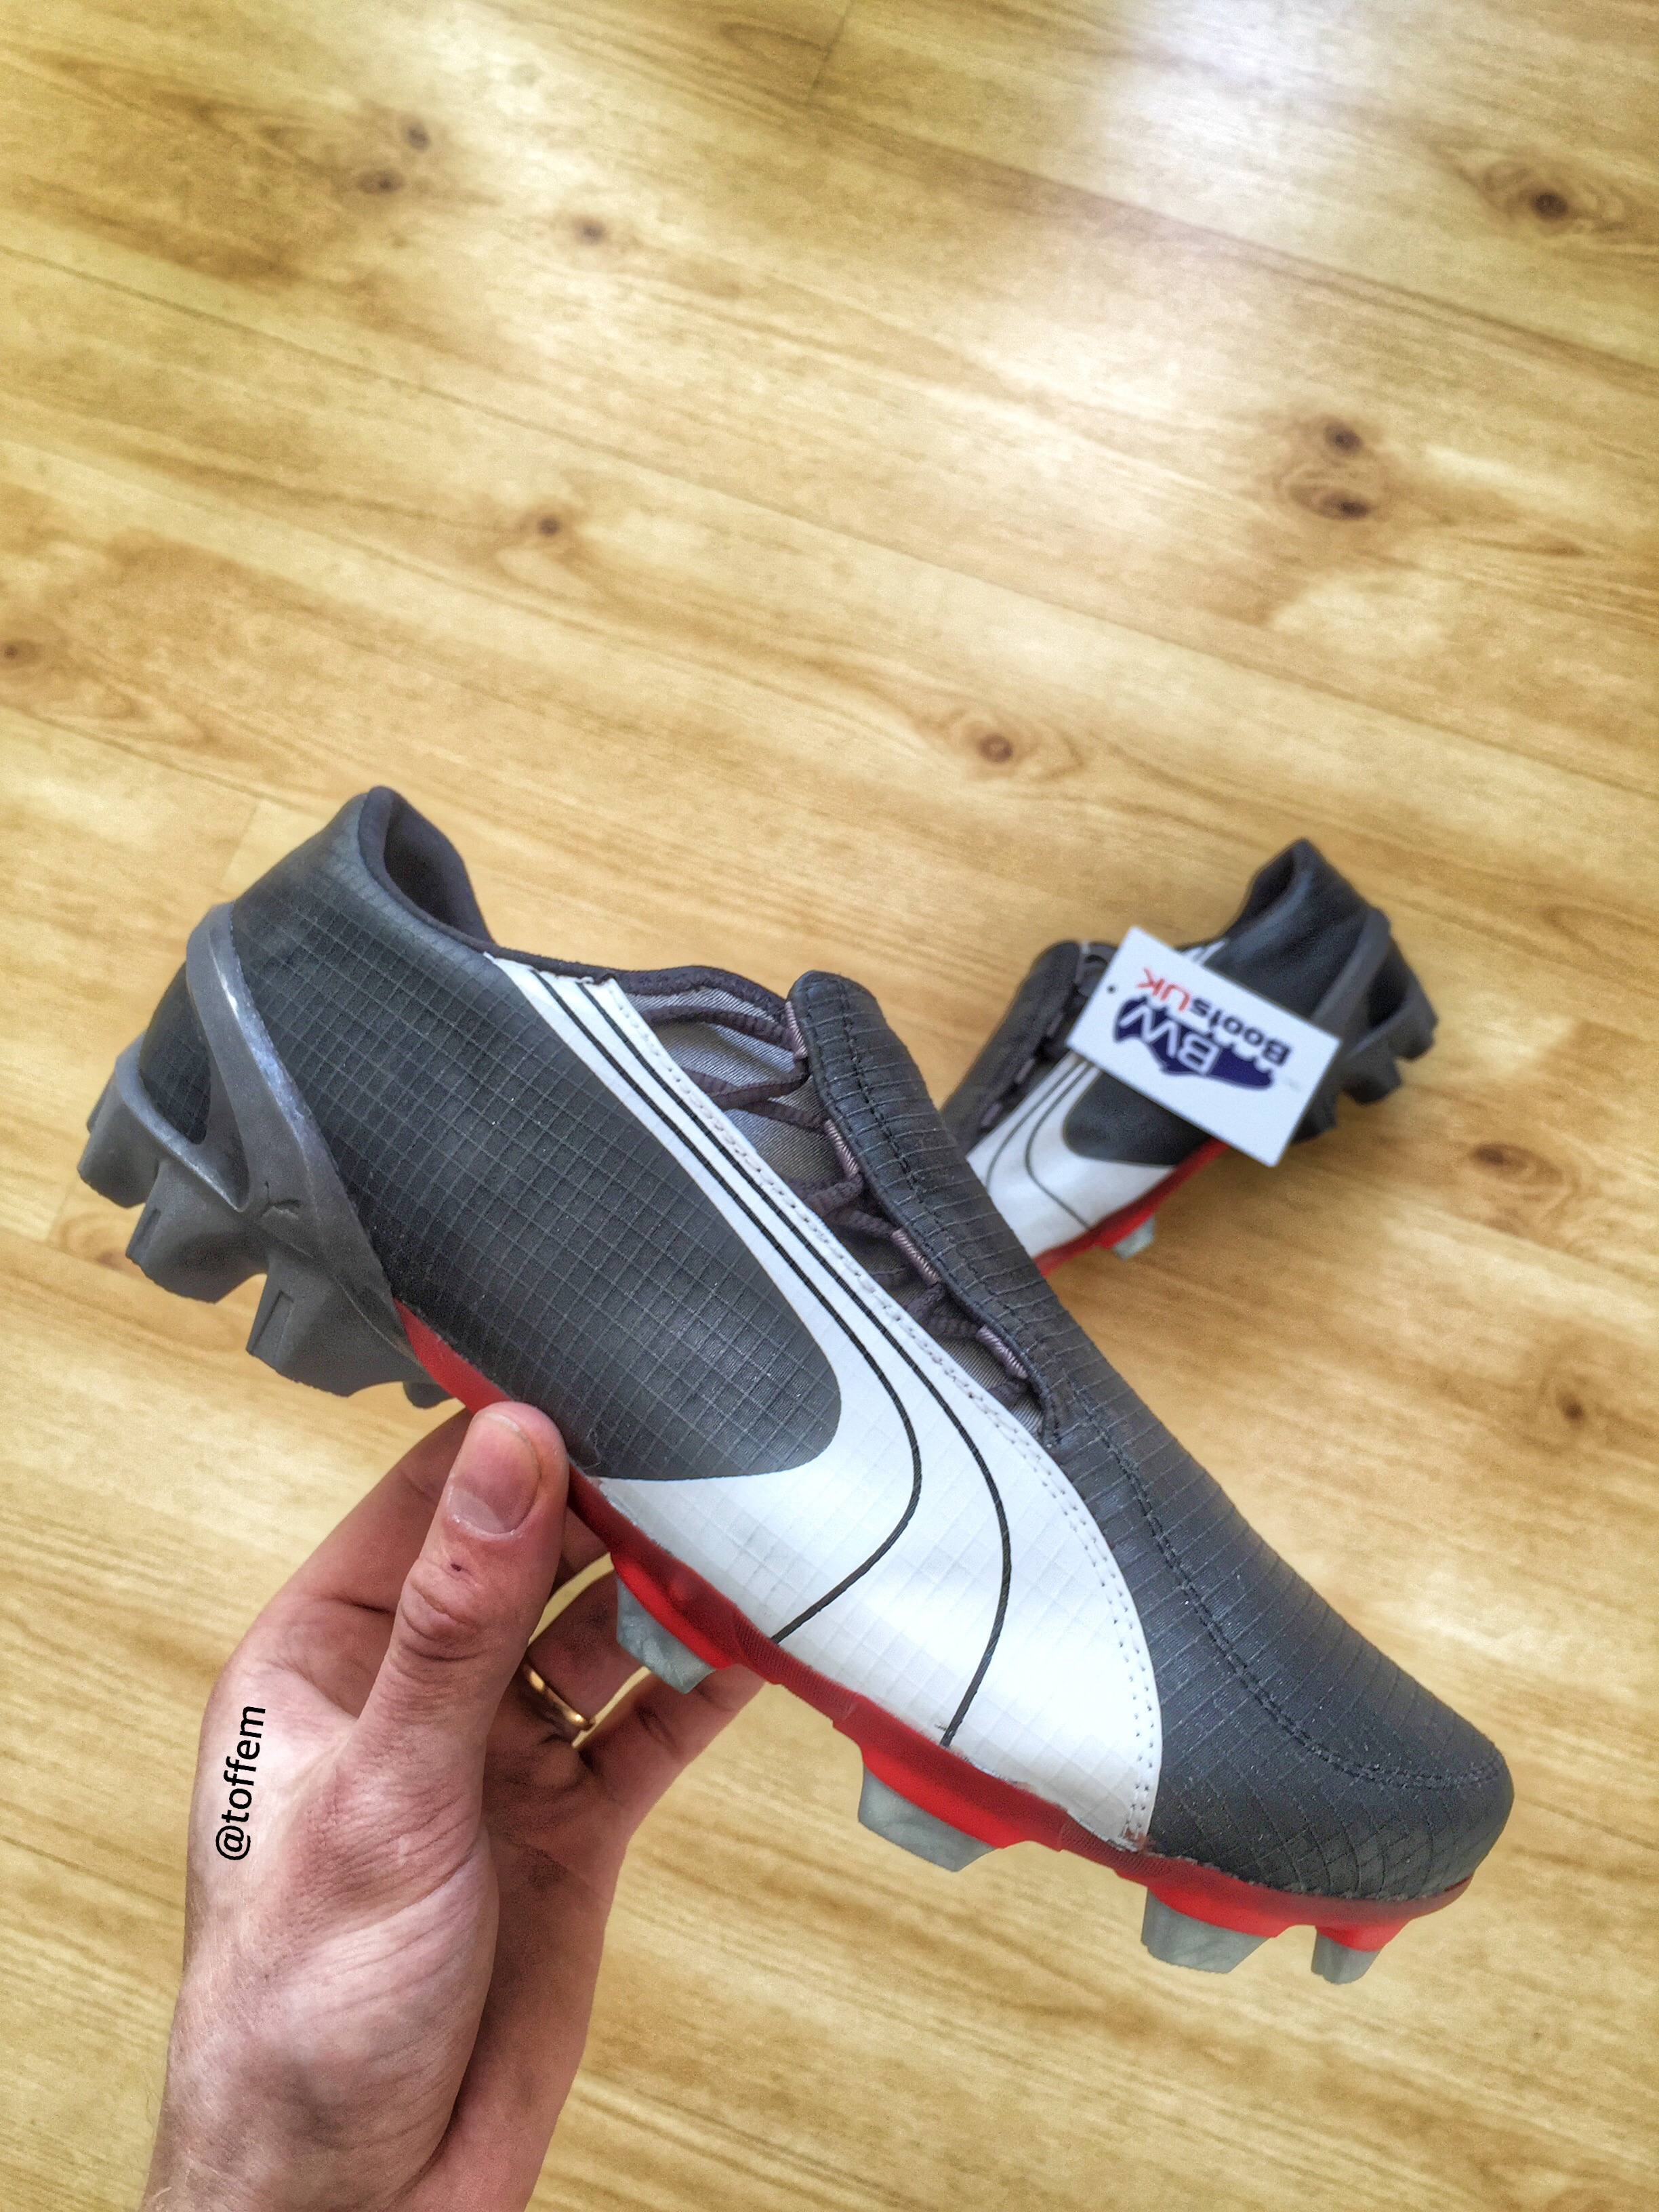 acca29778073 Some great players wore them such as Samuel Eto o